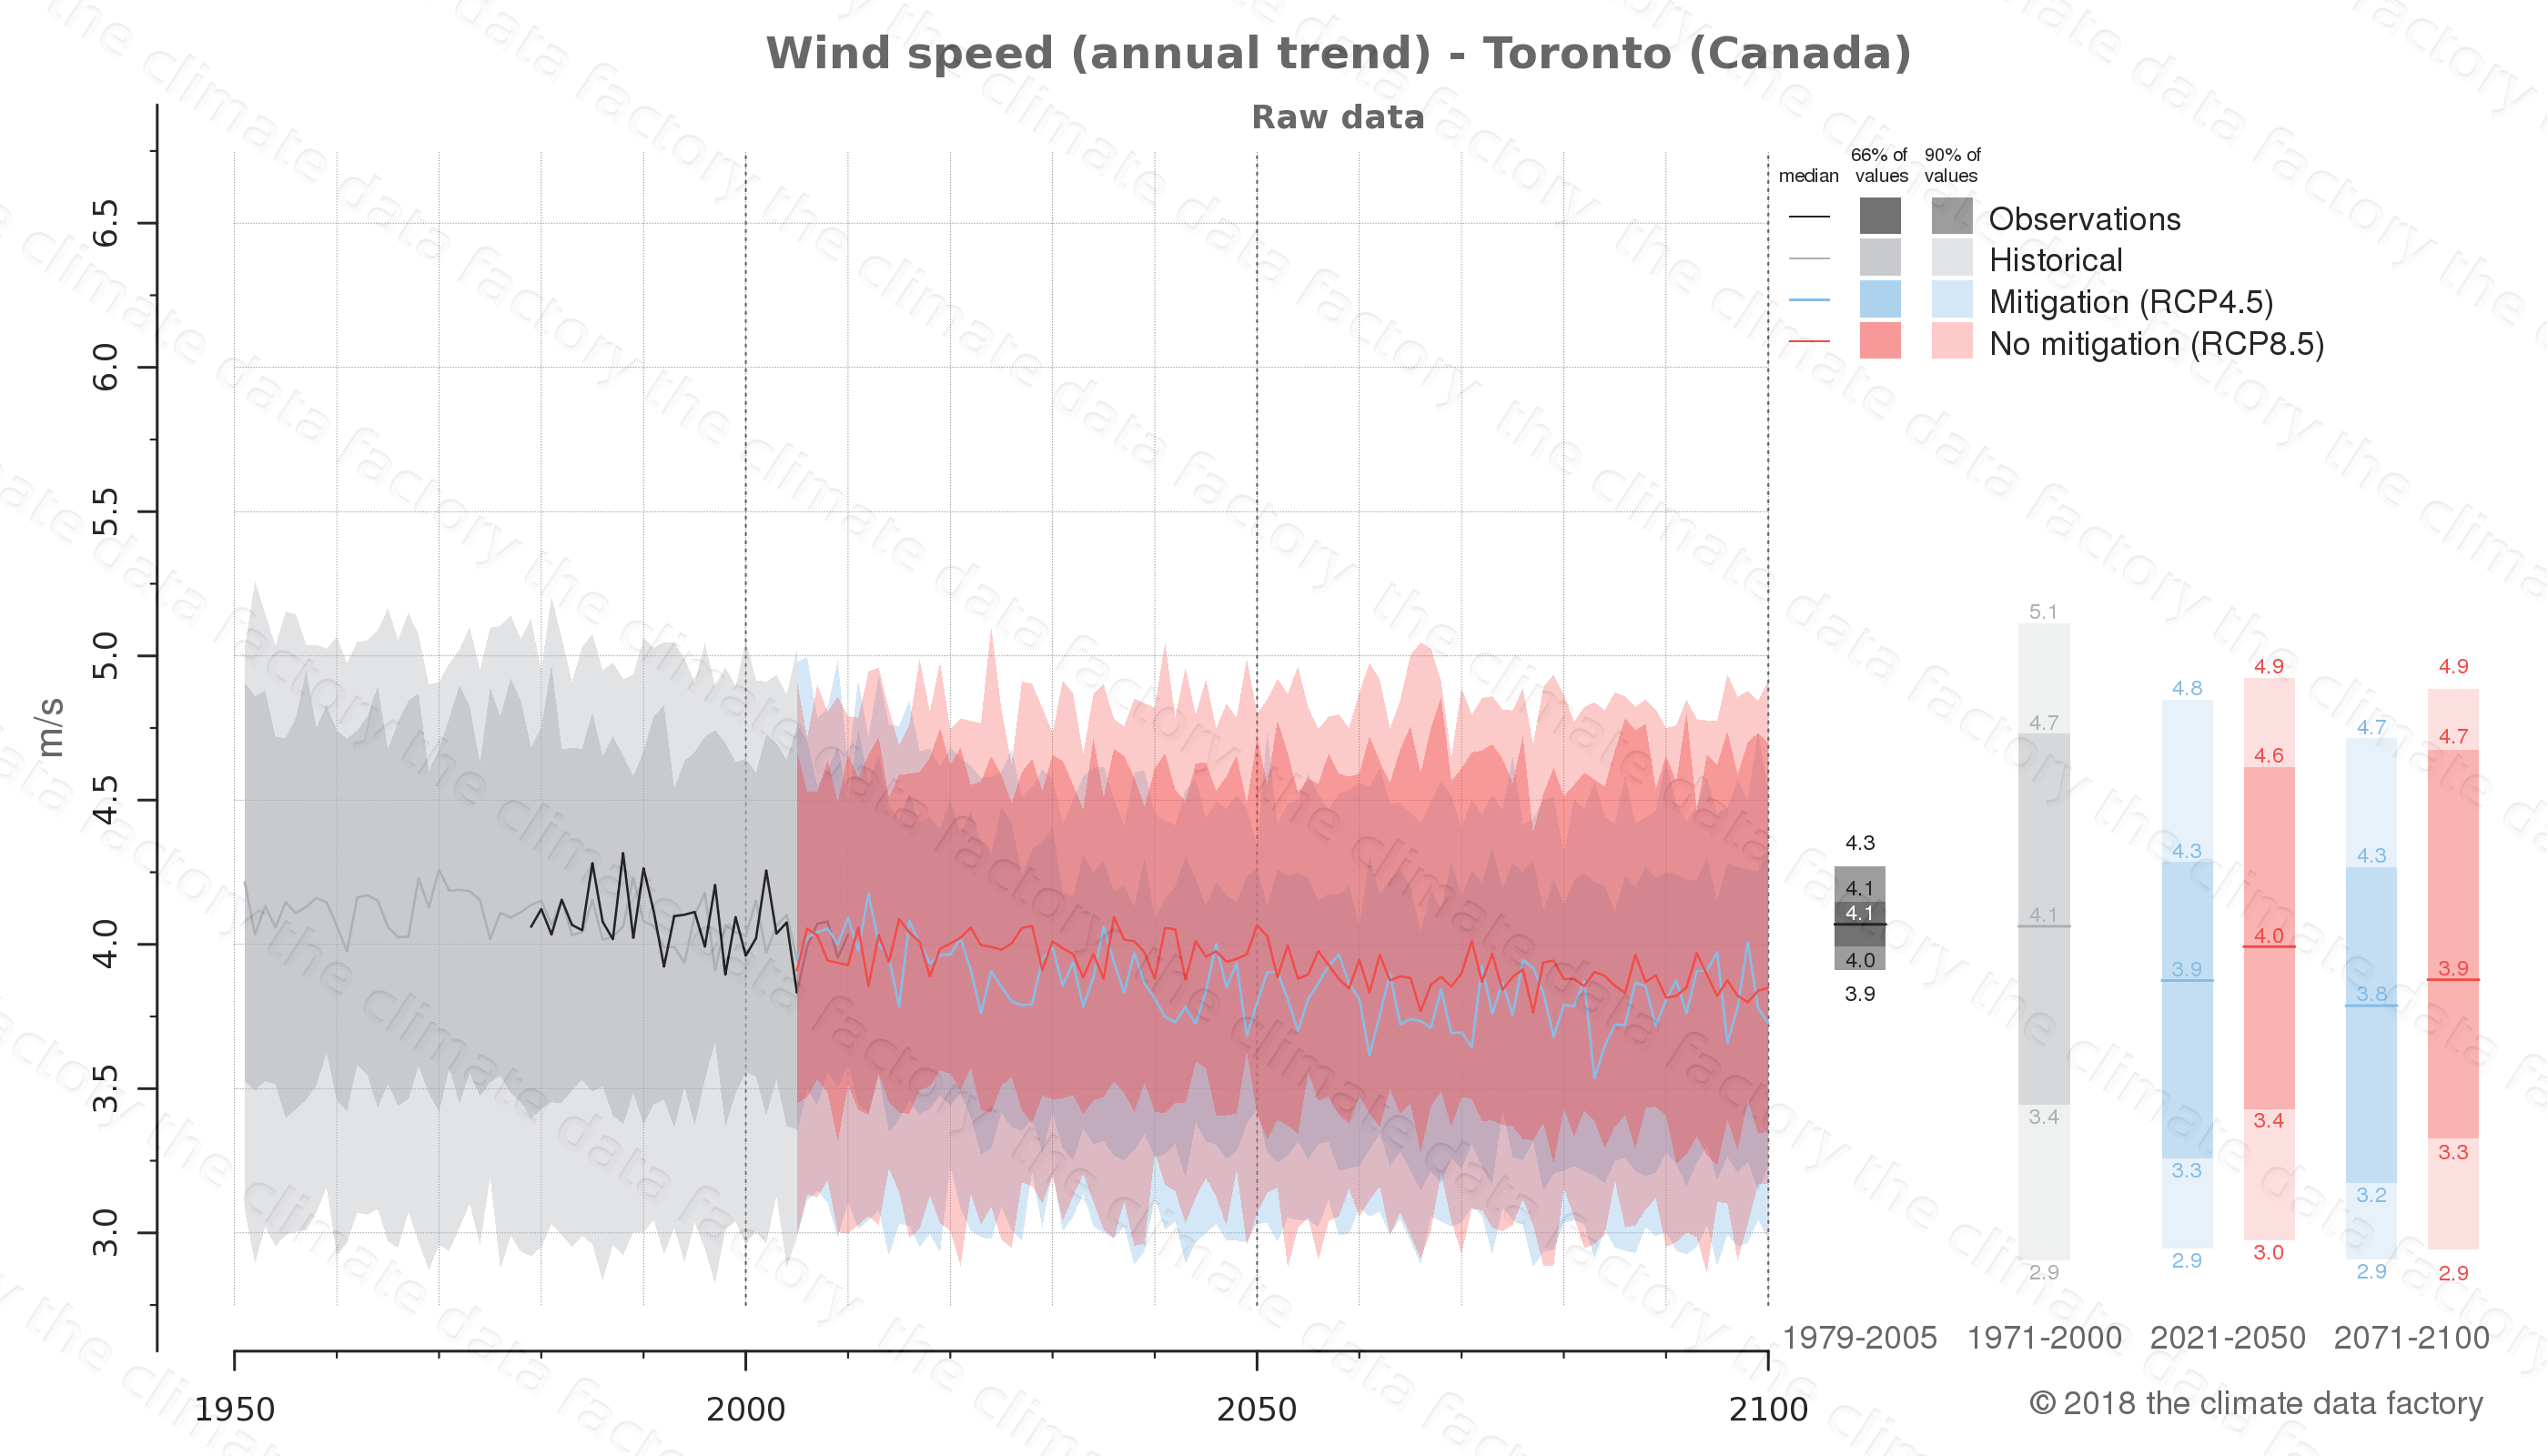 climate change data policy adaptation climate graph city data wind-speed toronto canada